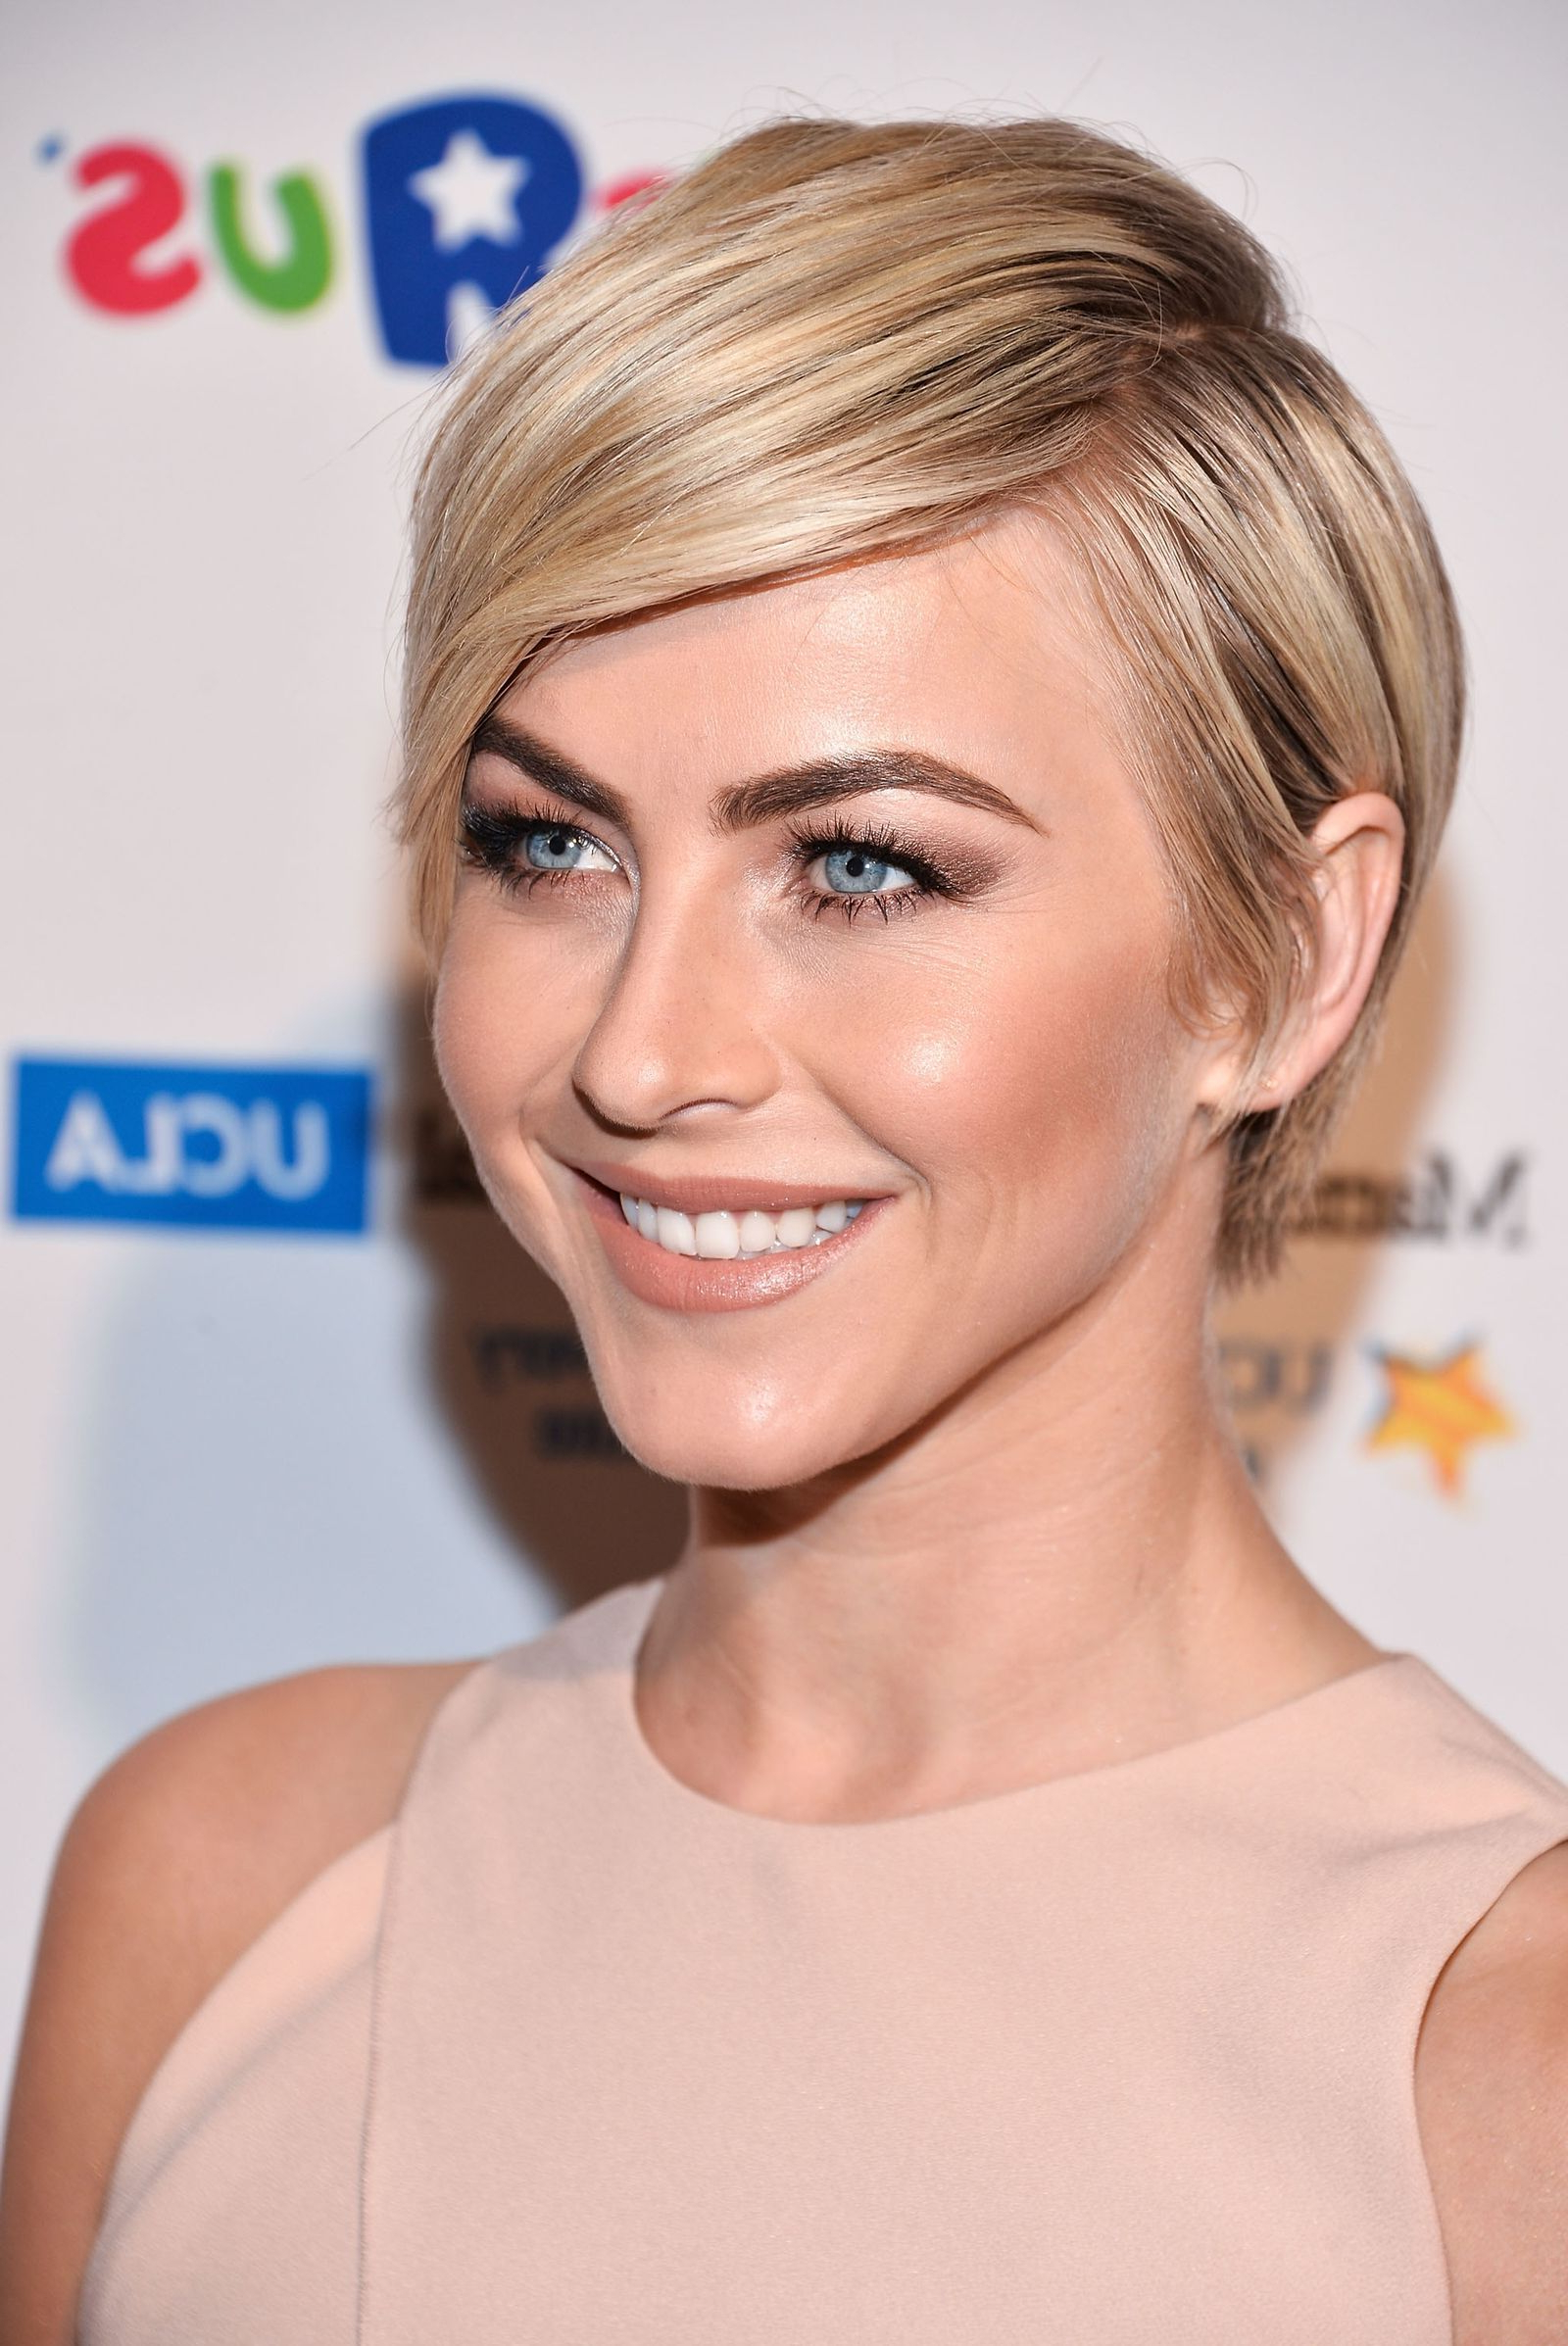 29 Of The Coolest Pixie Cuts Eeever   Hairstyles   Pinterest In Julianne Hough Short Hairstyles (View 10 of 25)